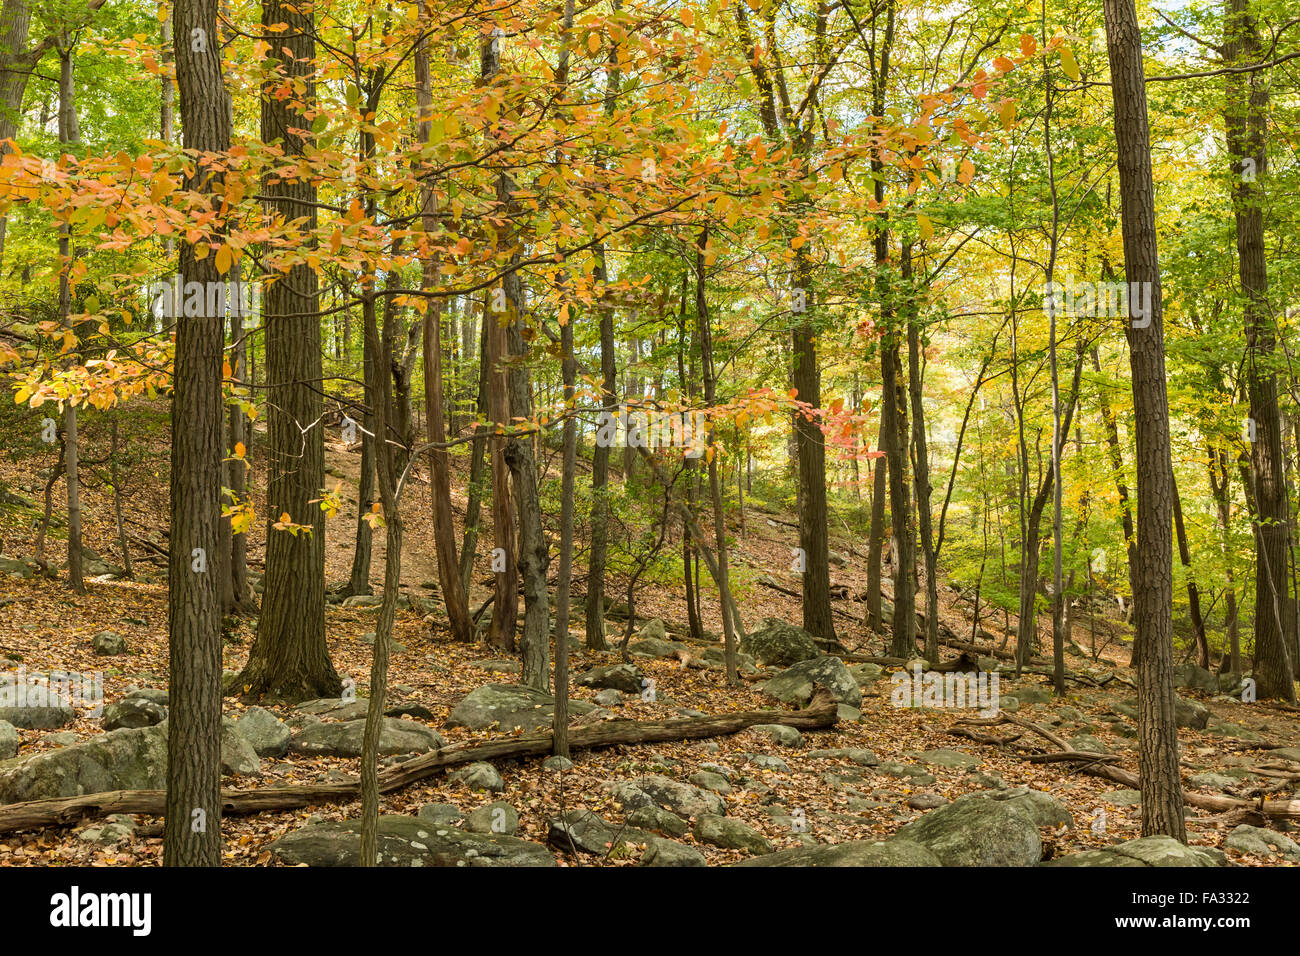 Autumn Leaves line the Major Welch Trail in Bear Mountain State Park, New York - Stock Image